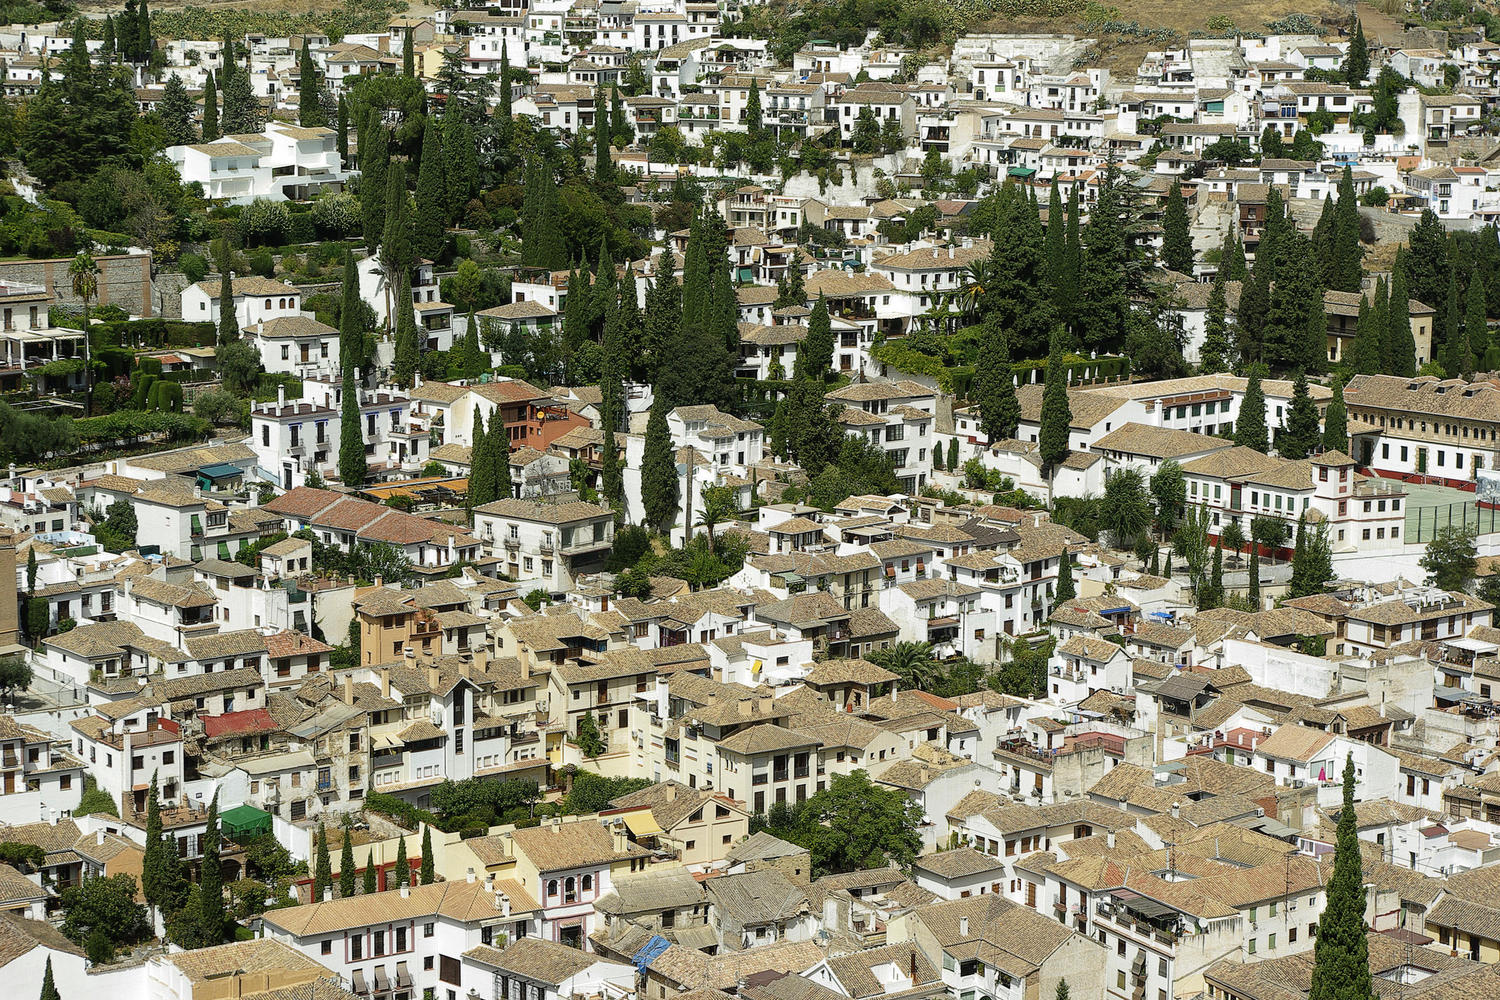 View of Granada's Albaicín district from La Alhambra